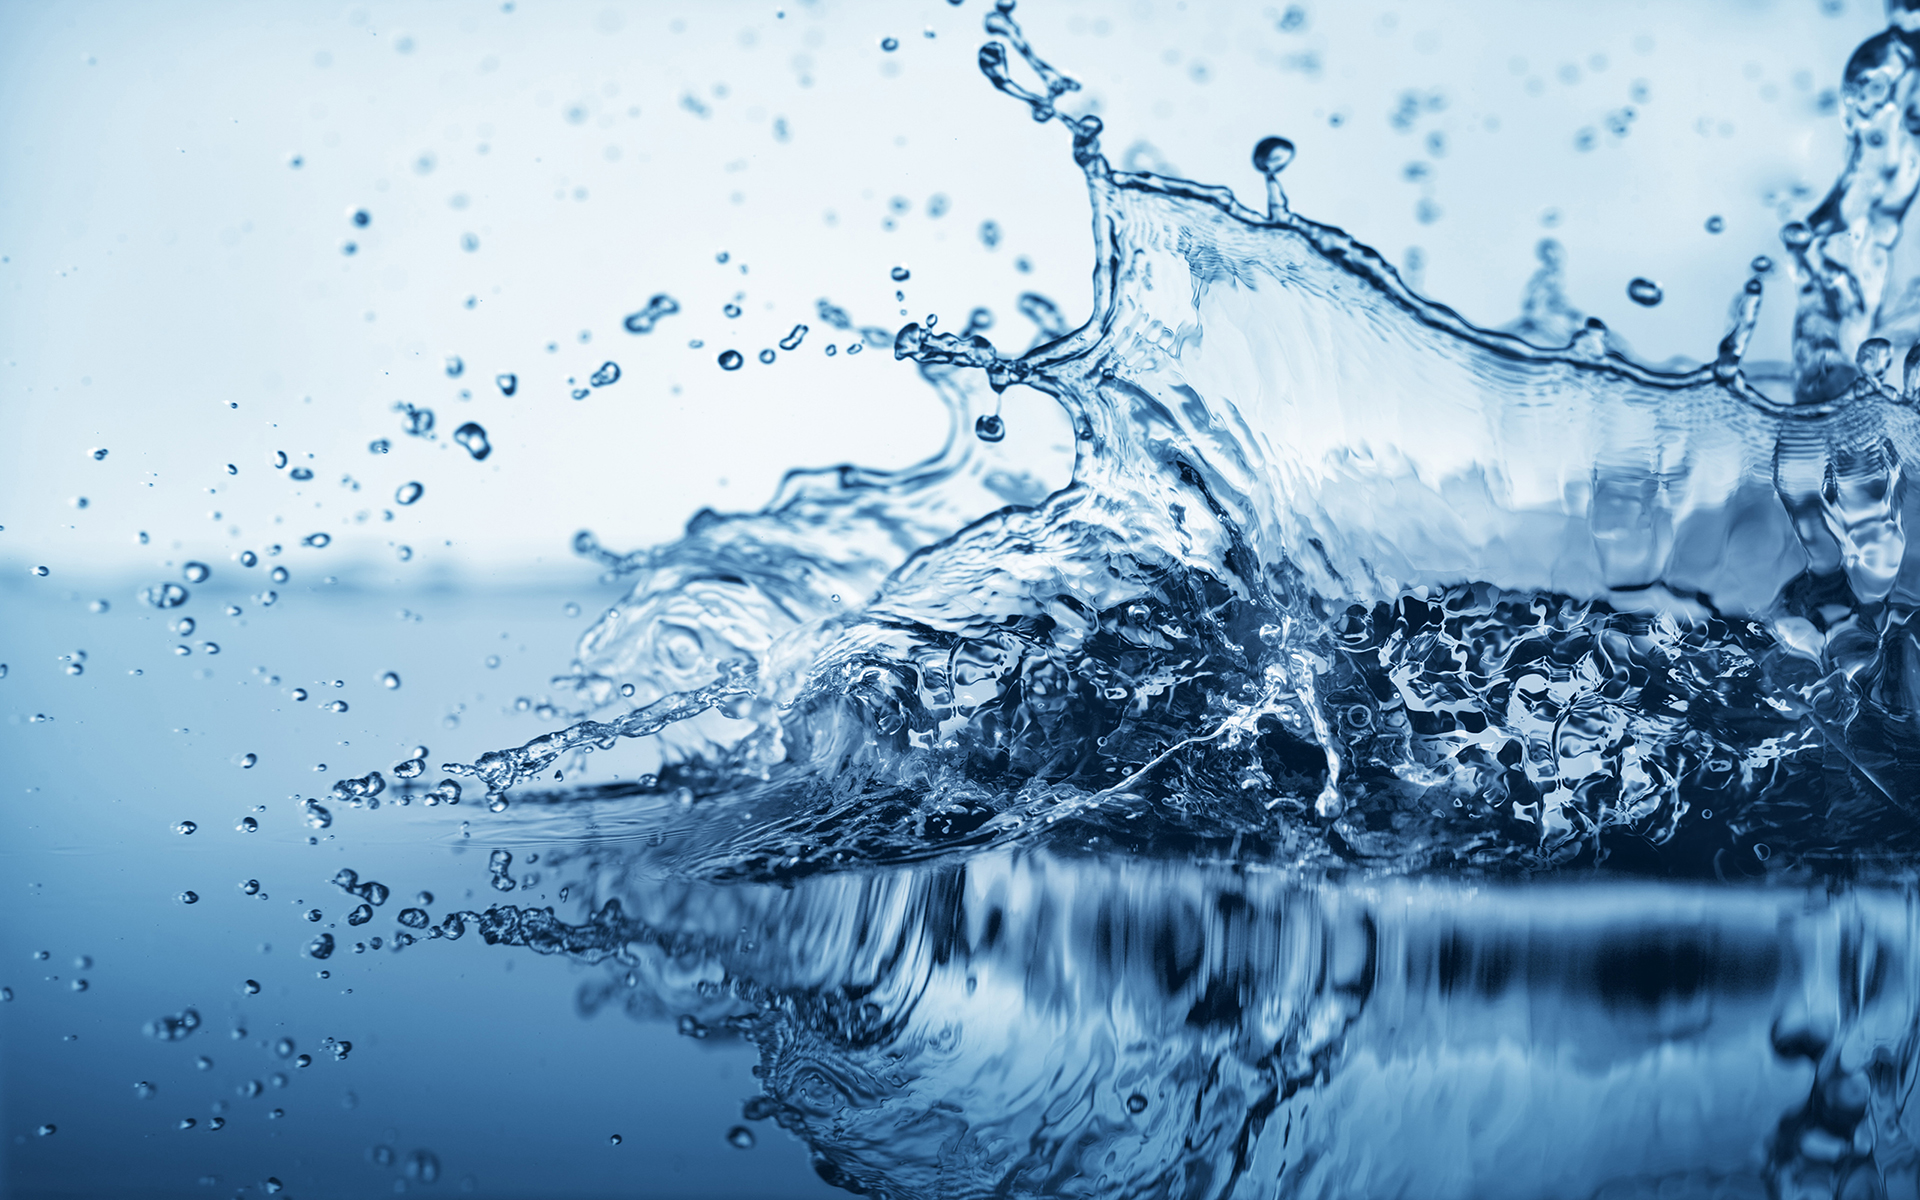 Cool Water Splash - HD Wallpapers